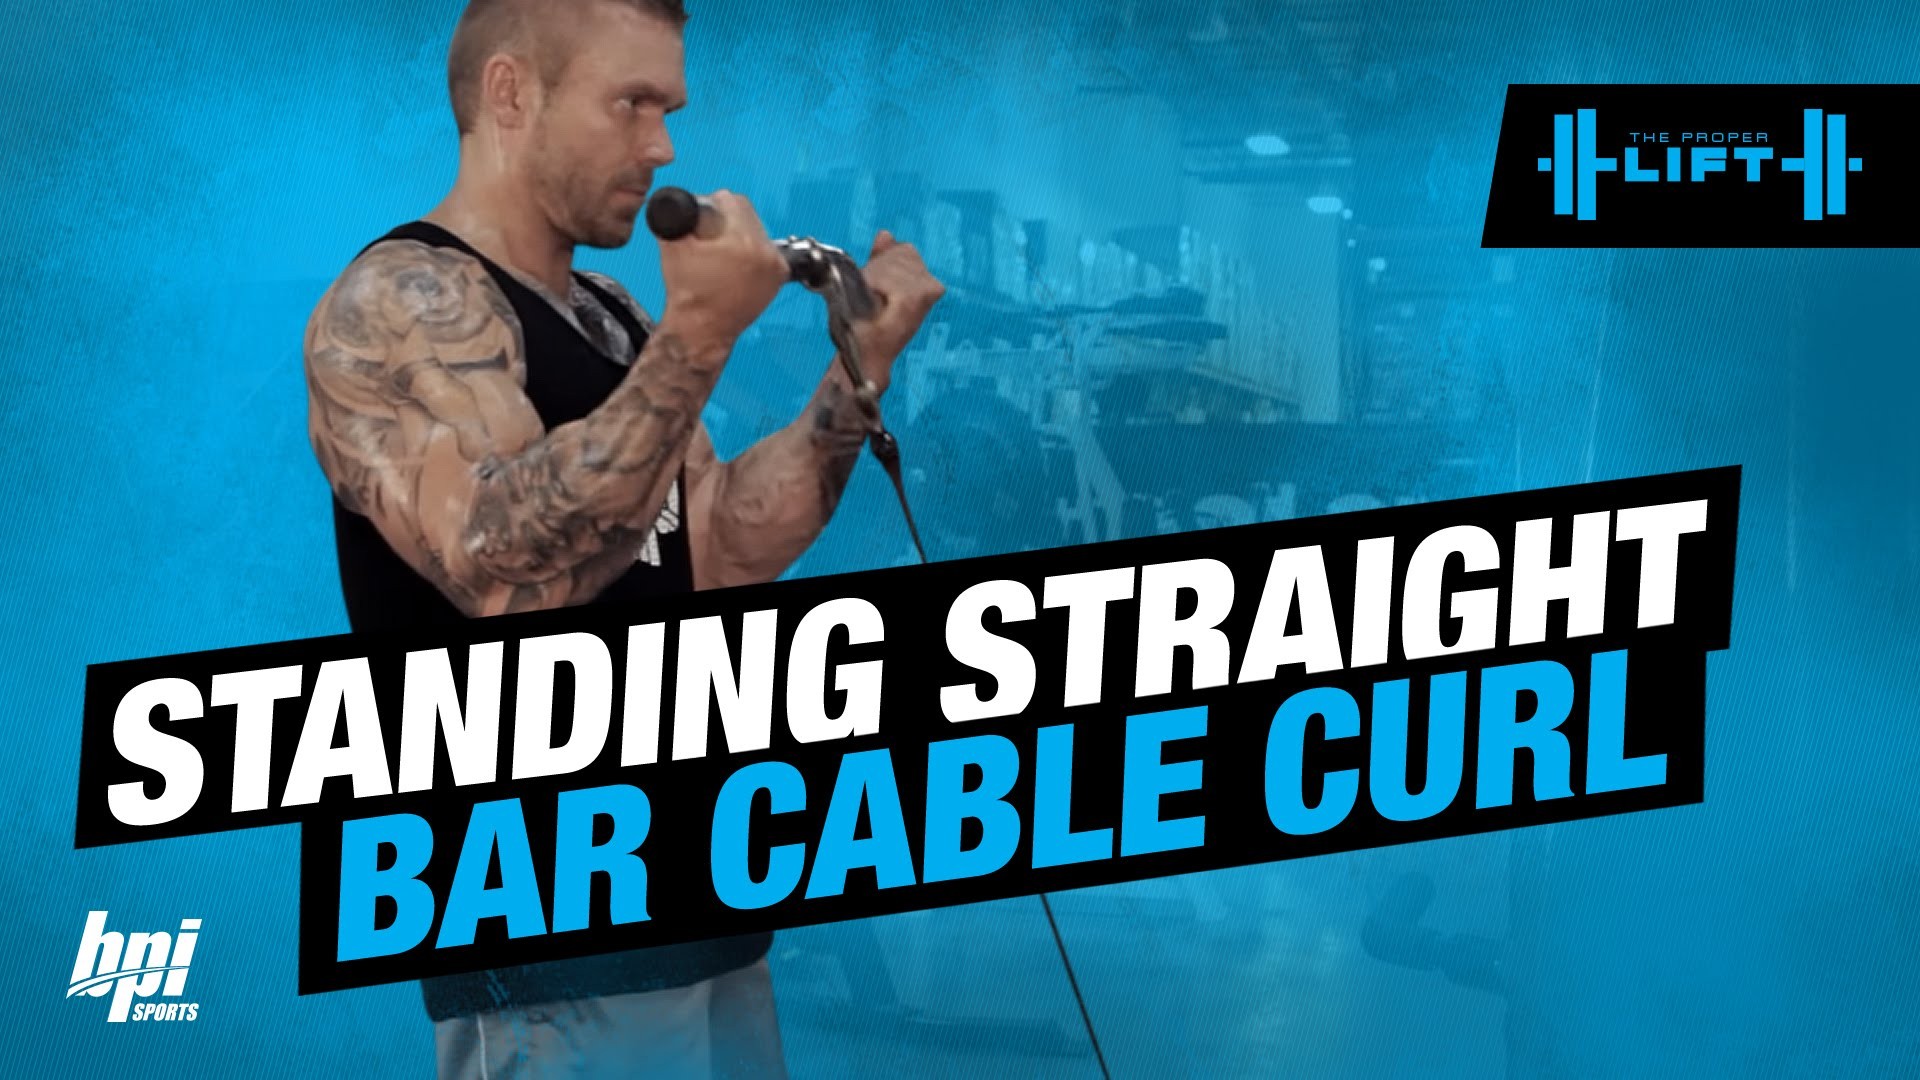 Standing-Straight-Bar-Cable-Curl-The-Proper-Lift-BPI-Sports